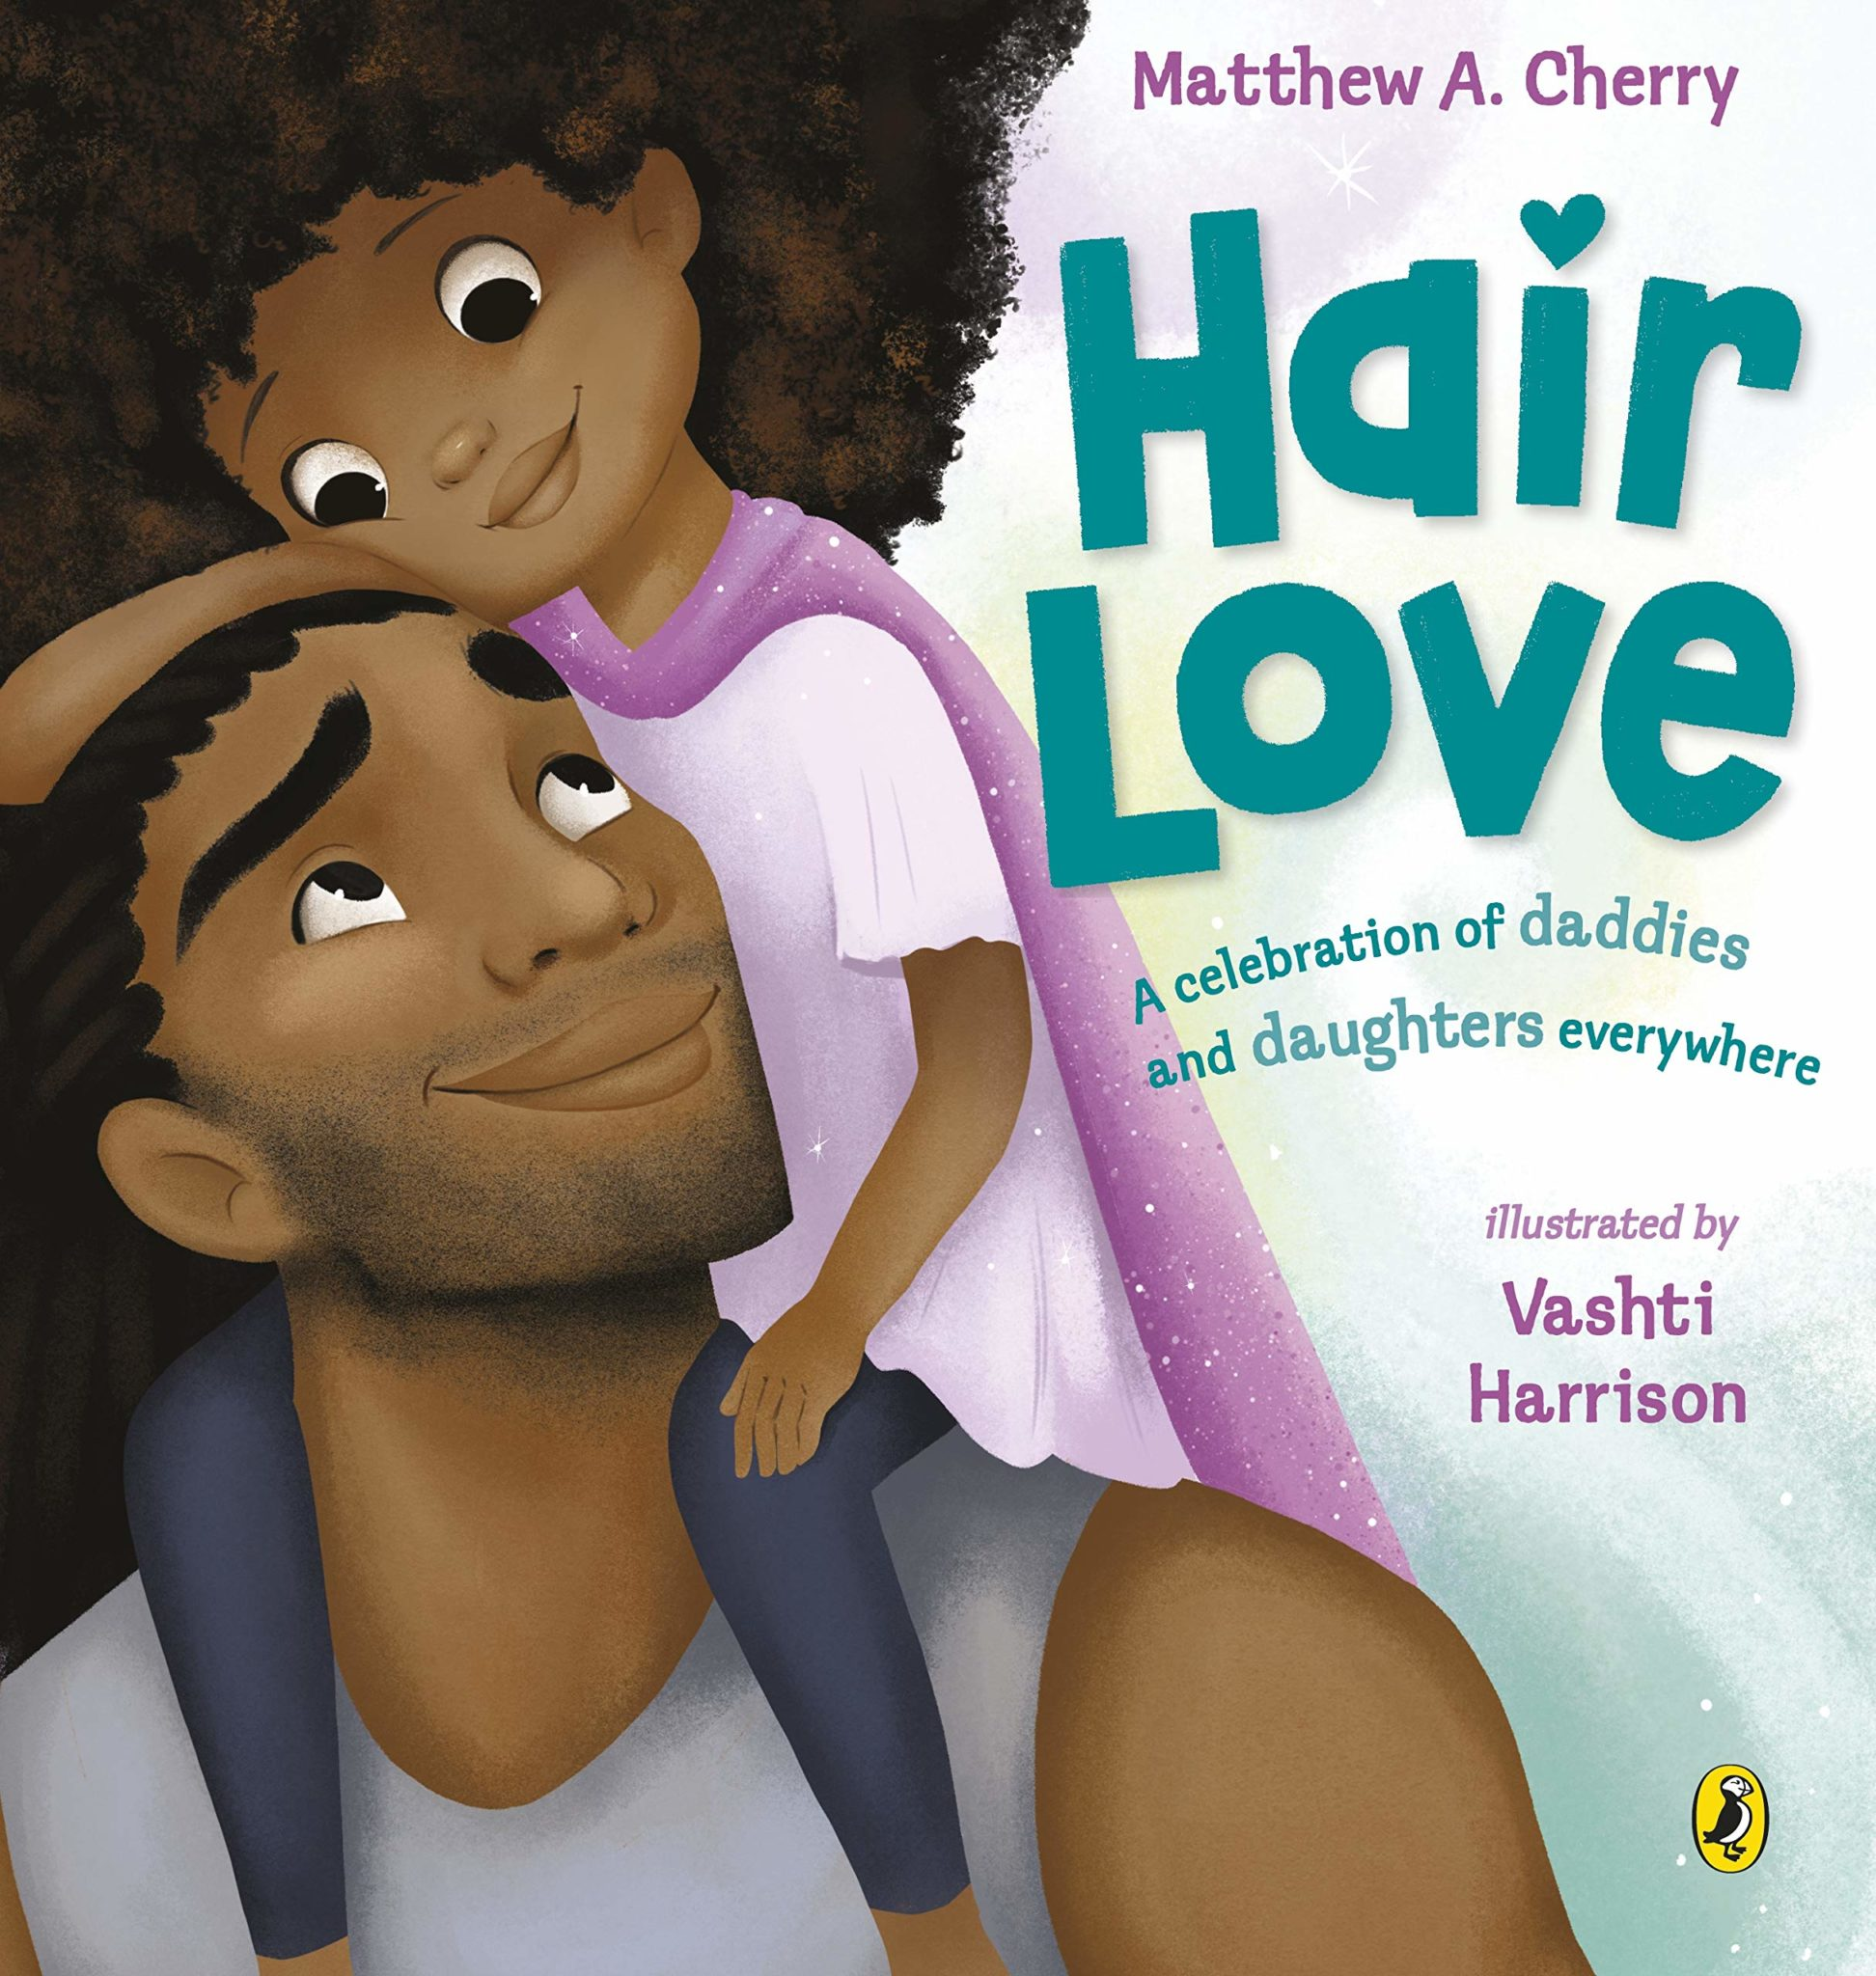 Hair love - Vashti Harrison. The best books for kids about race that they need on their bookshelves. in classrooms and in libraries. These 25+ suggestions have all been enjoyed by our family, and are guaranteed to raise healthy discussions about cultural diversity.